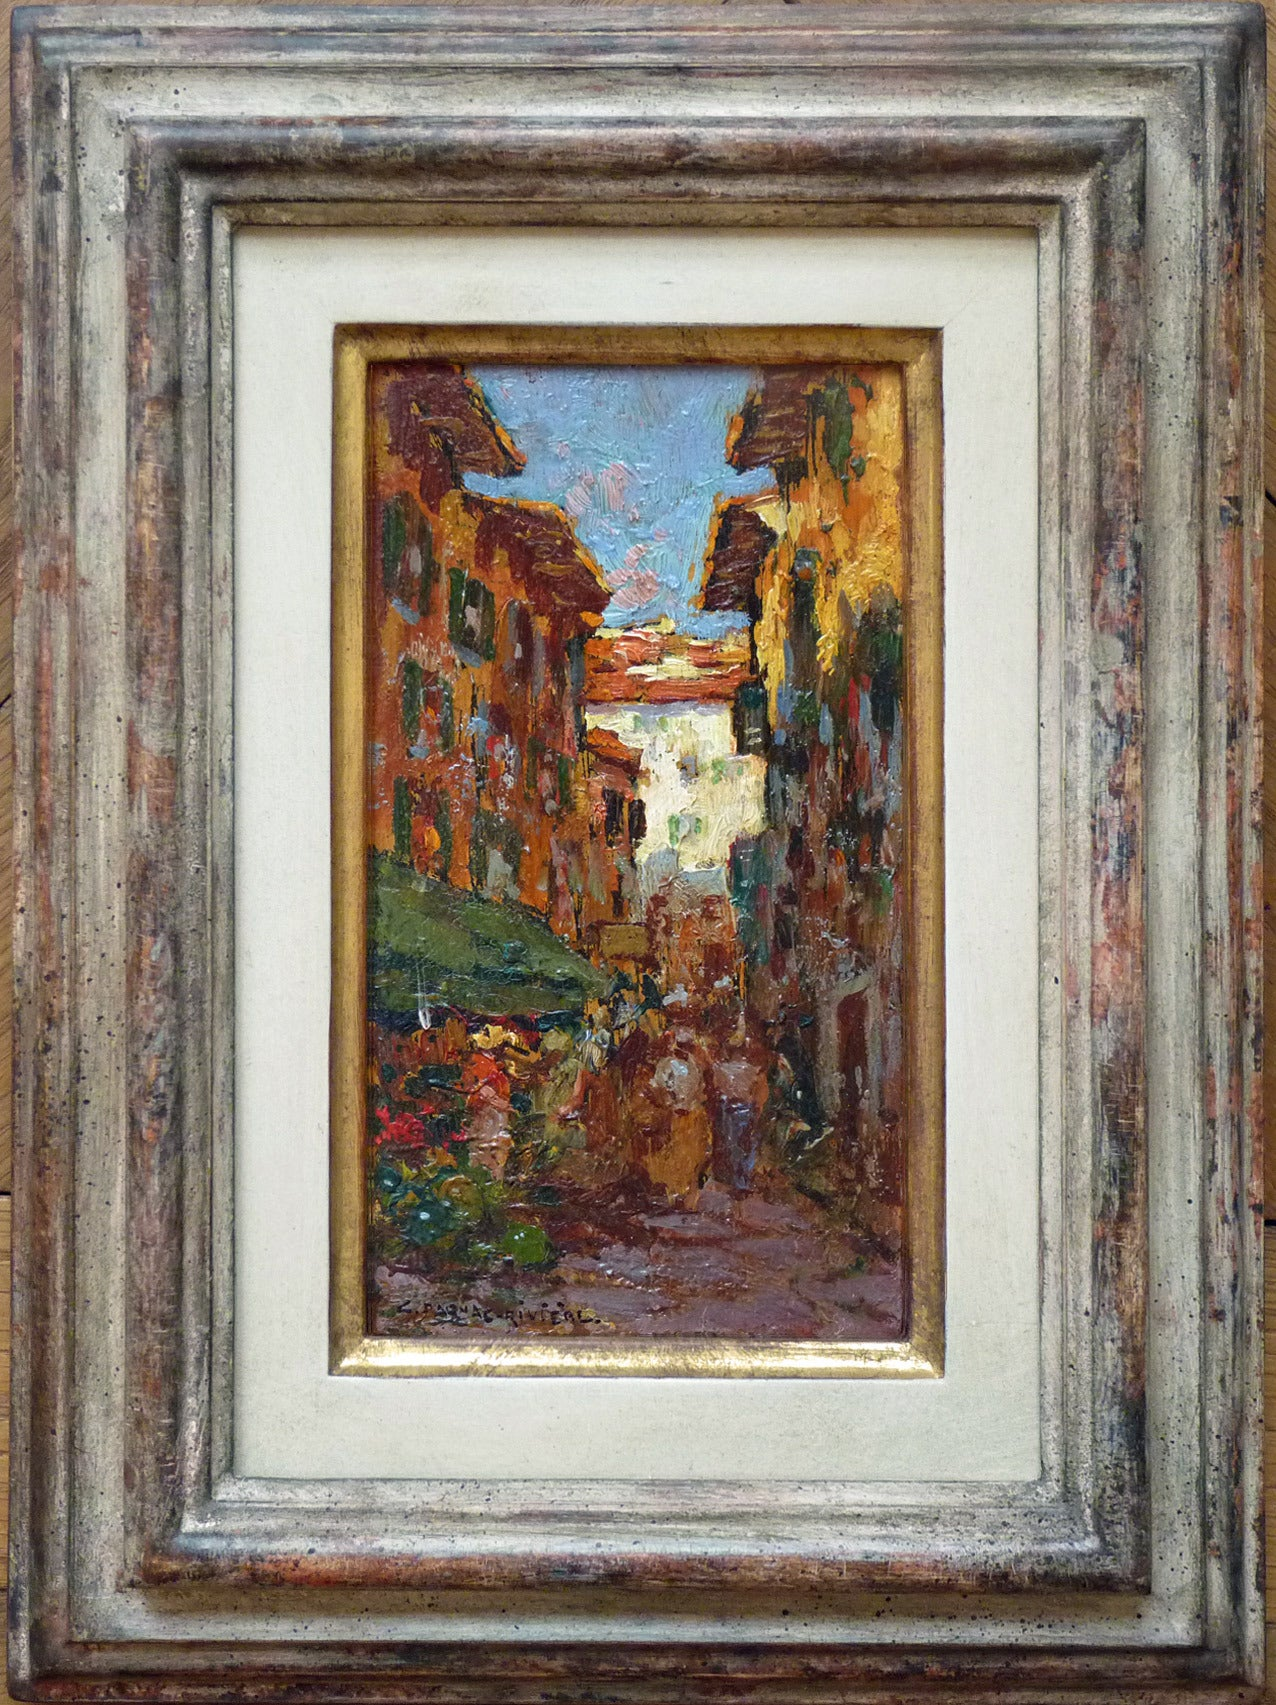 Busy street in Nice, impressionist cabinet piece in oil paint by Dagnac-Riviere